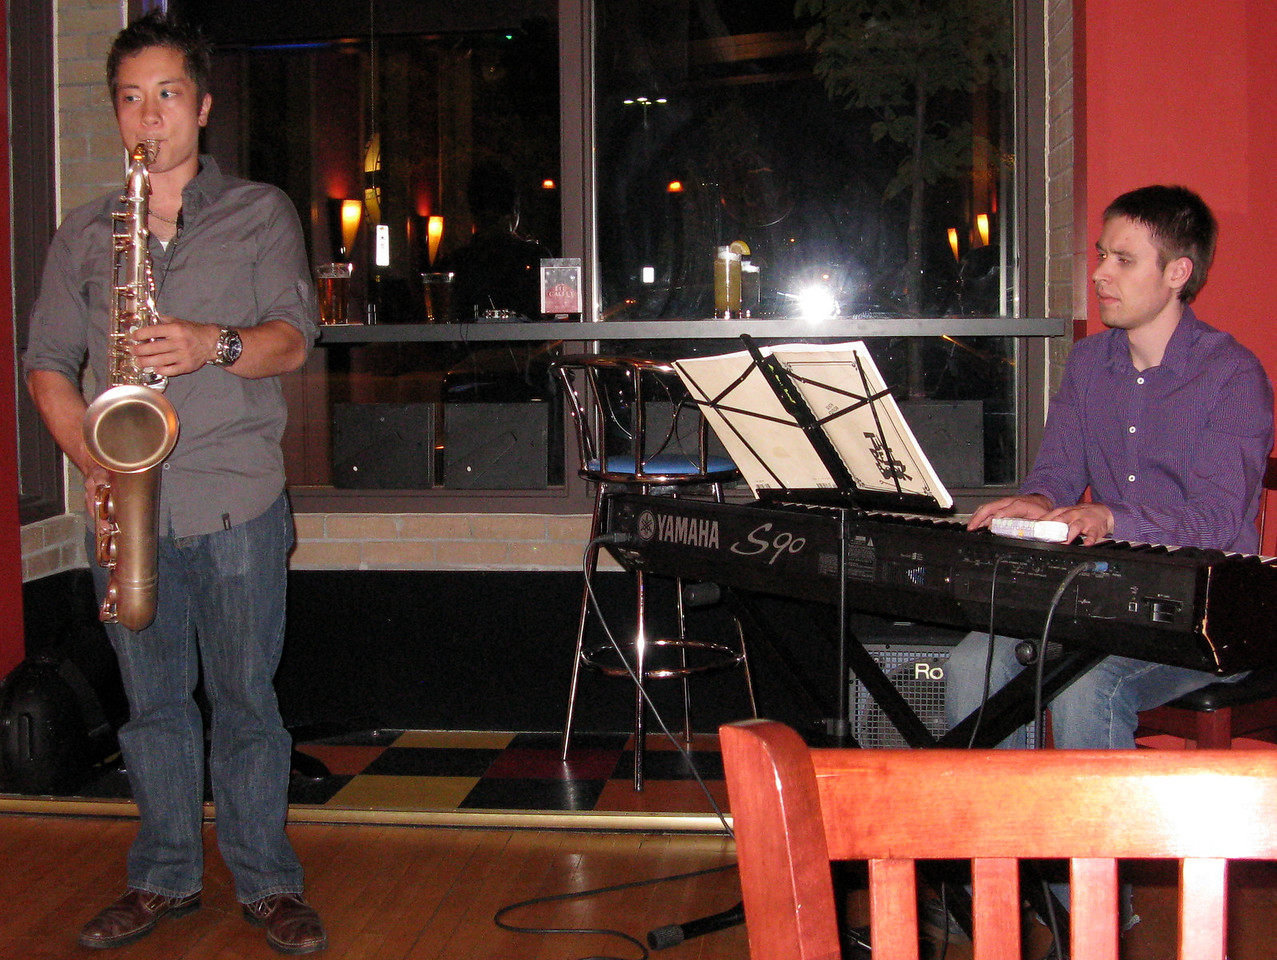 Kevin played the lounge gig with Eric Jordan, tenor sax.